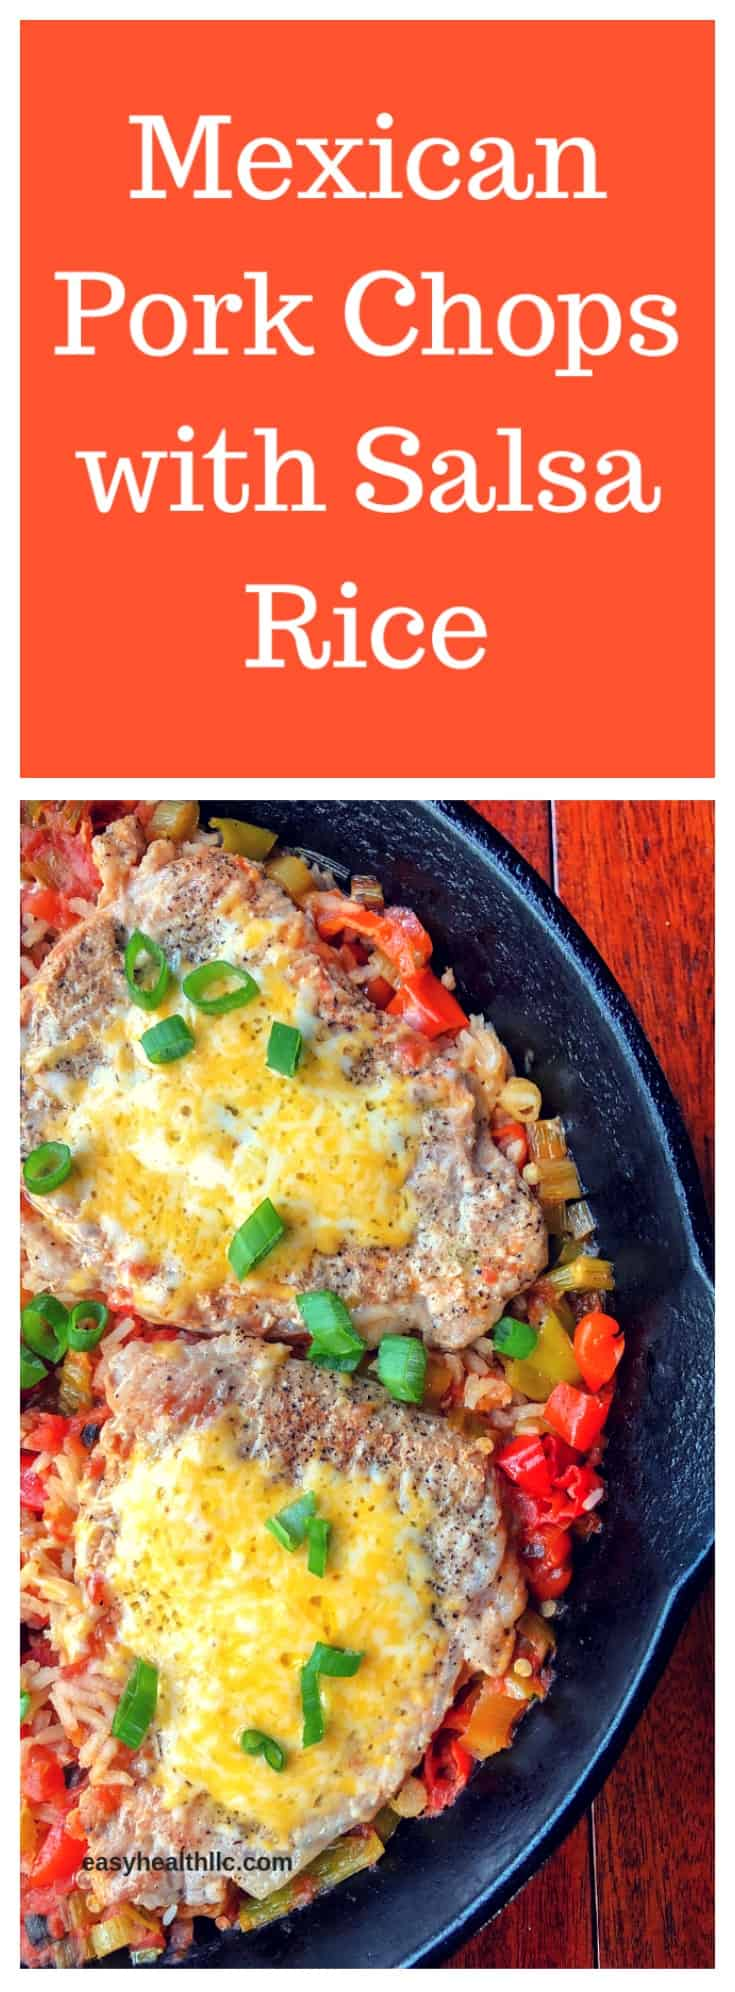 A tasty Mexican rice with pork chops recipe the whole family will love.  Uses your favorite salsa for a burst of flavor- perfect for a quick week night meal.